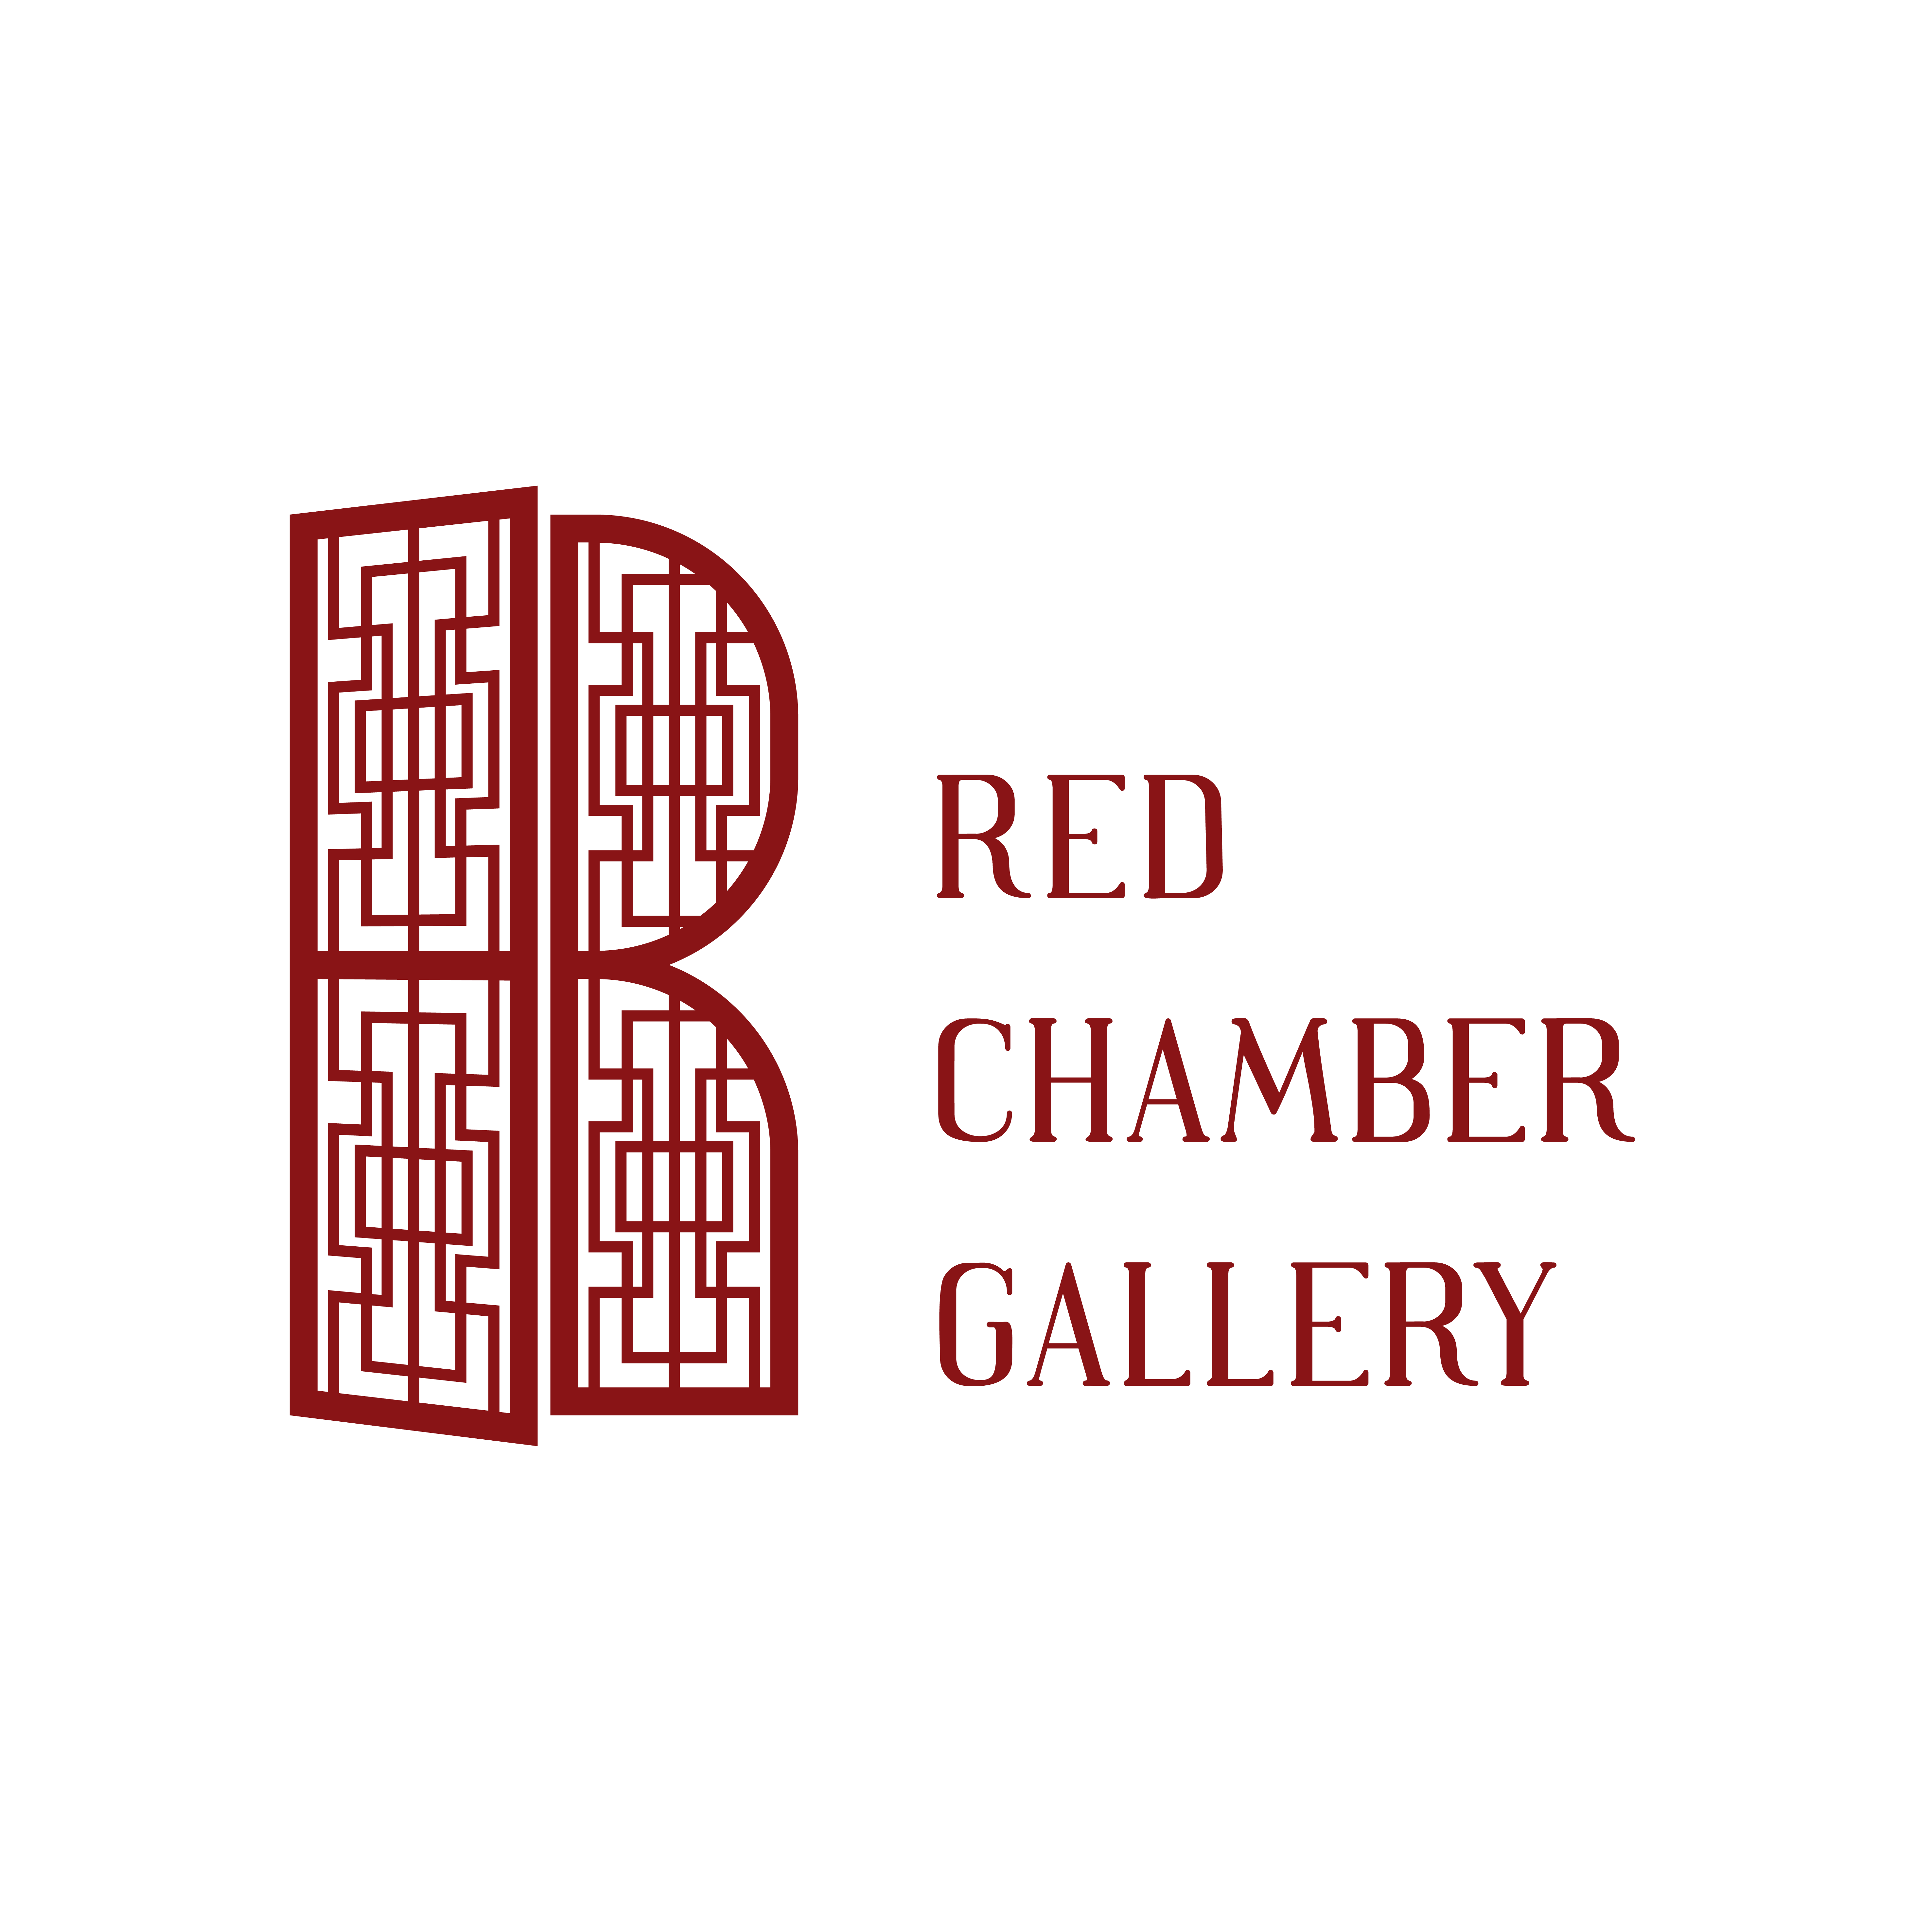 Red Chamber Gallery